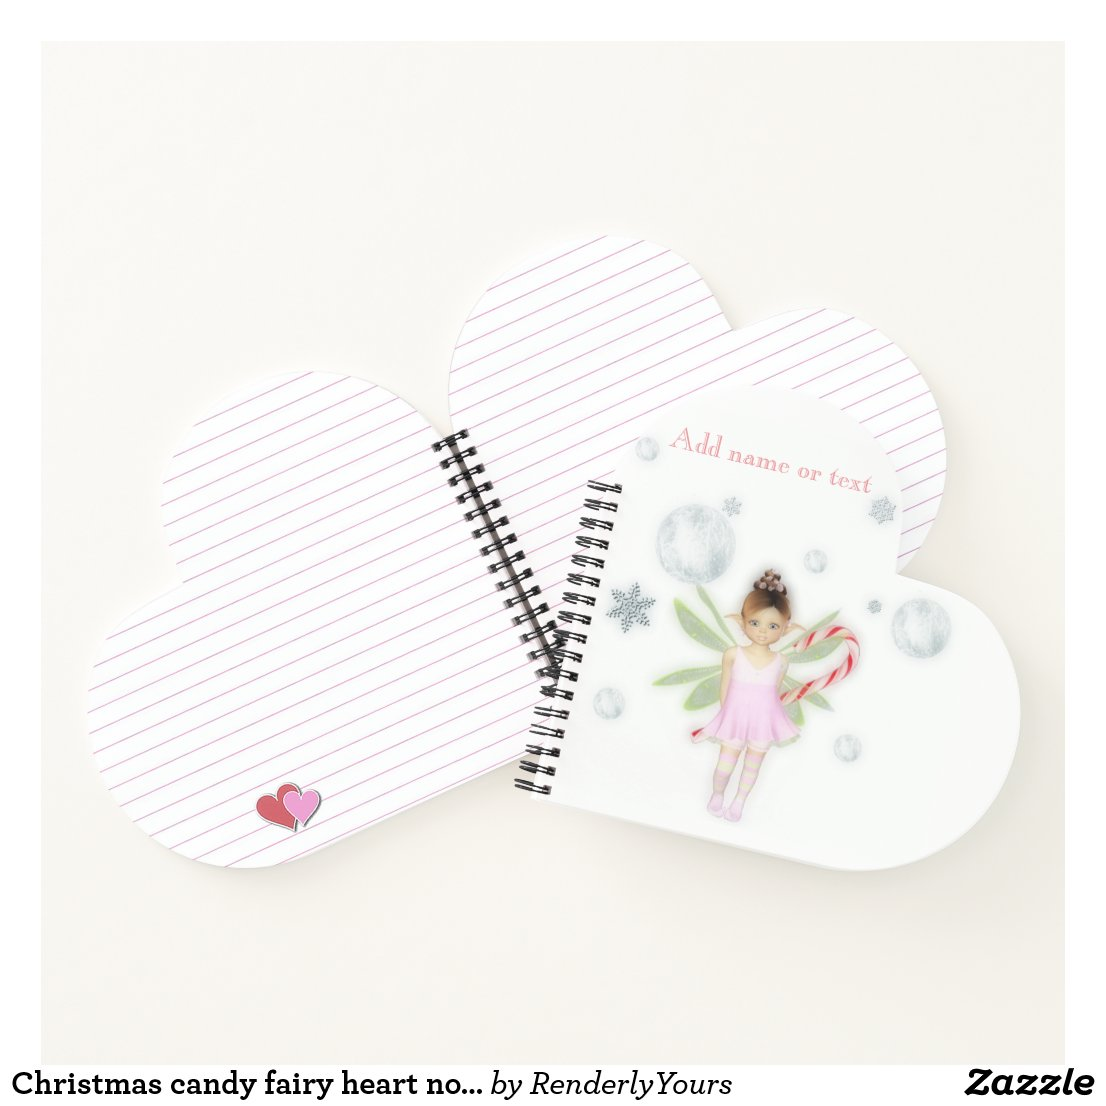 Christmas candy fairy heart notenook notebook